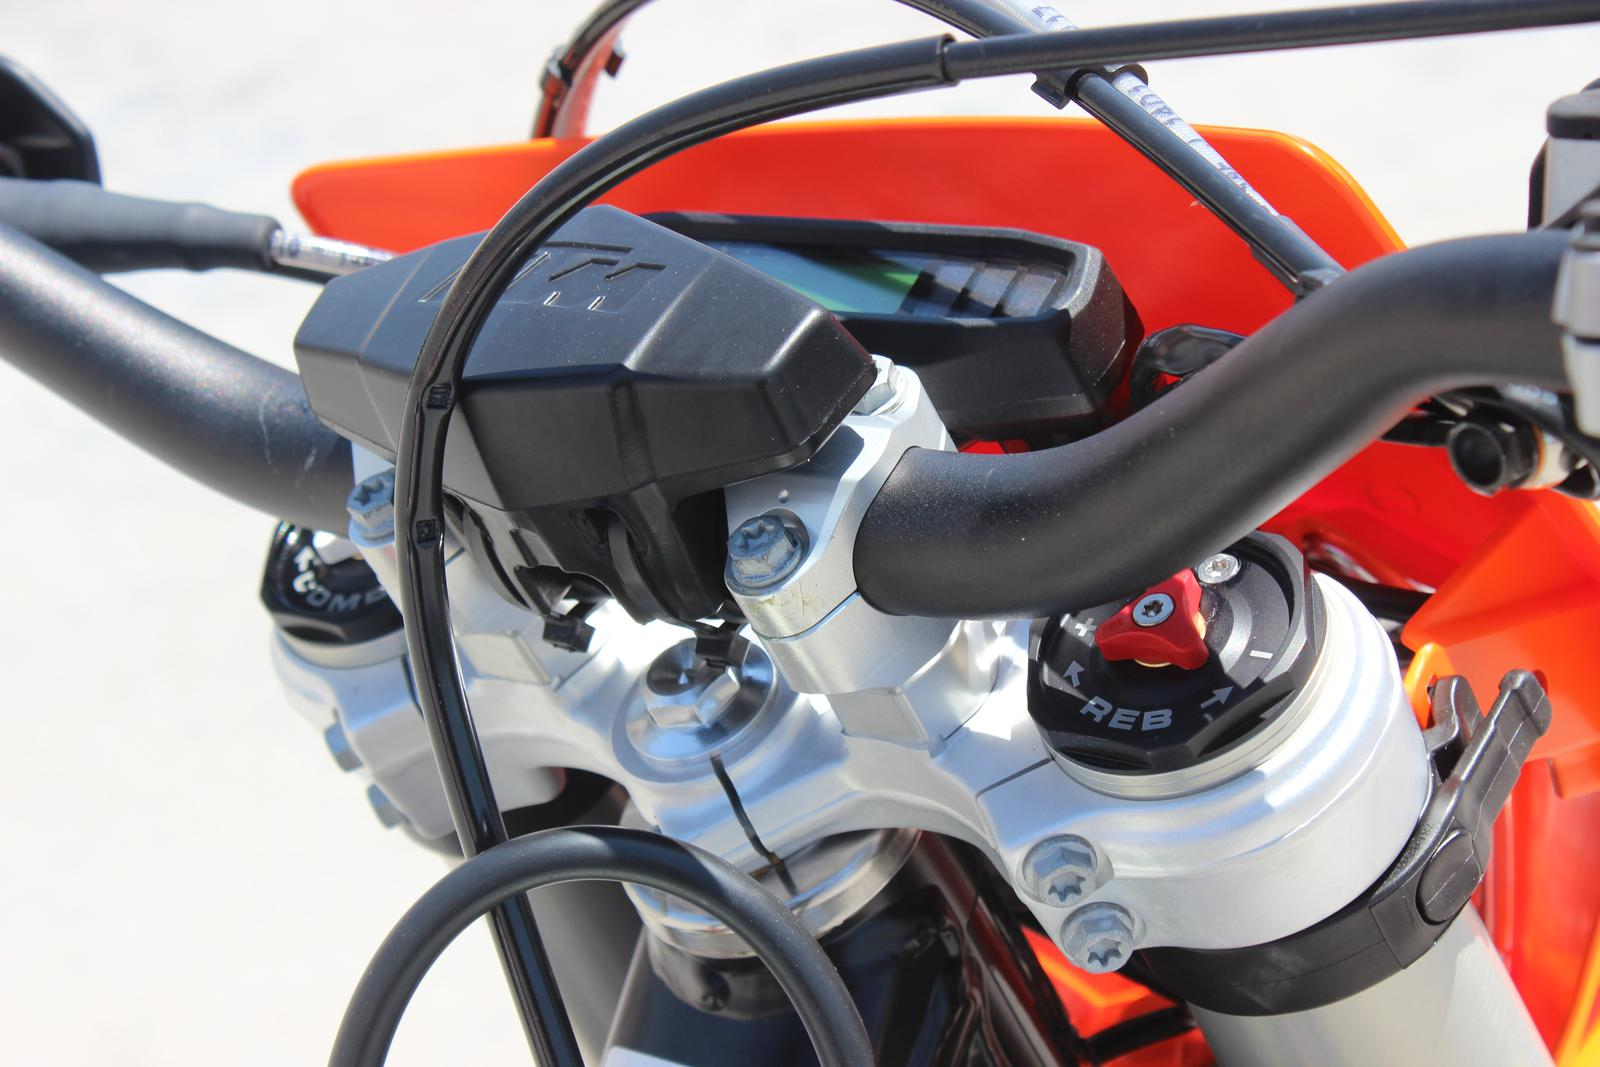 2018 Ktm 300 Xc W Wiring Diagram And Exc